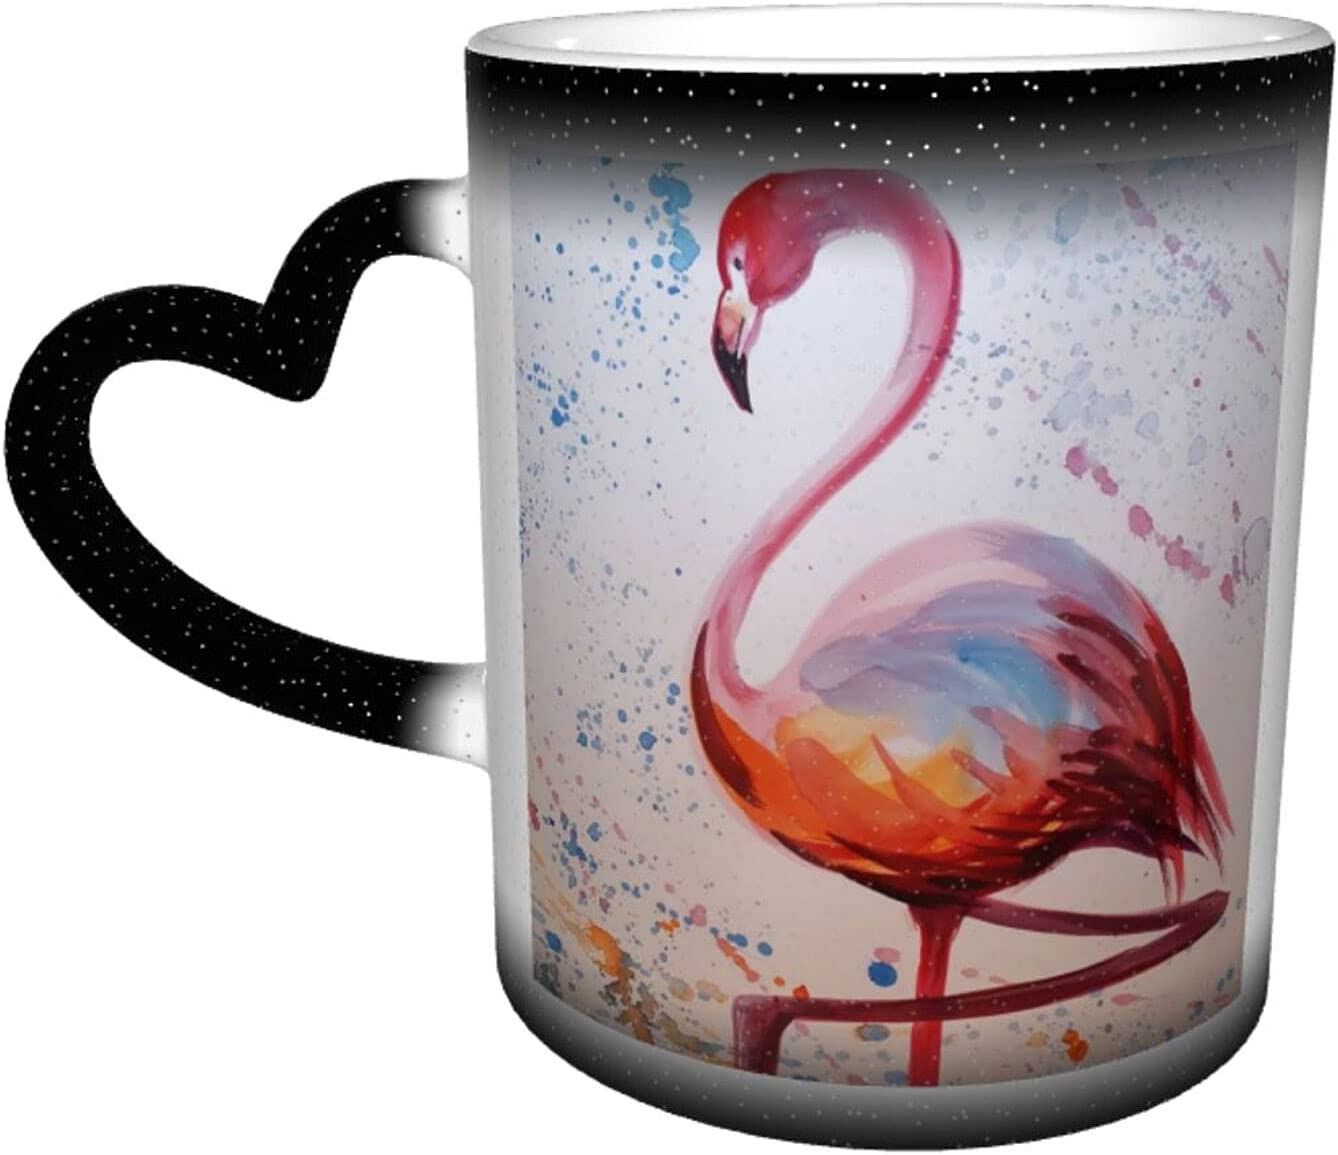 Universal Ceramic Heat Sensitive Color Surprise price Cups Changing Coffee At the price Cup